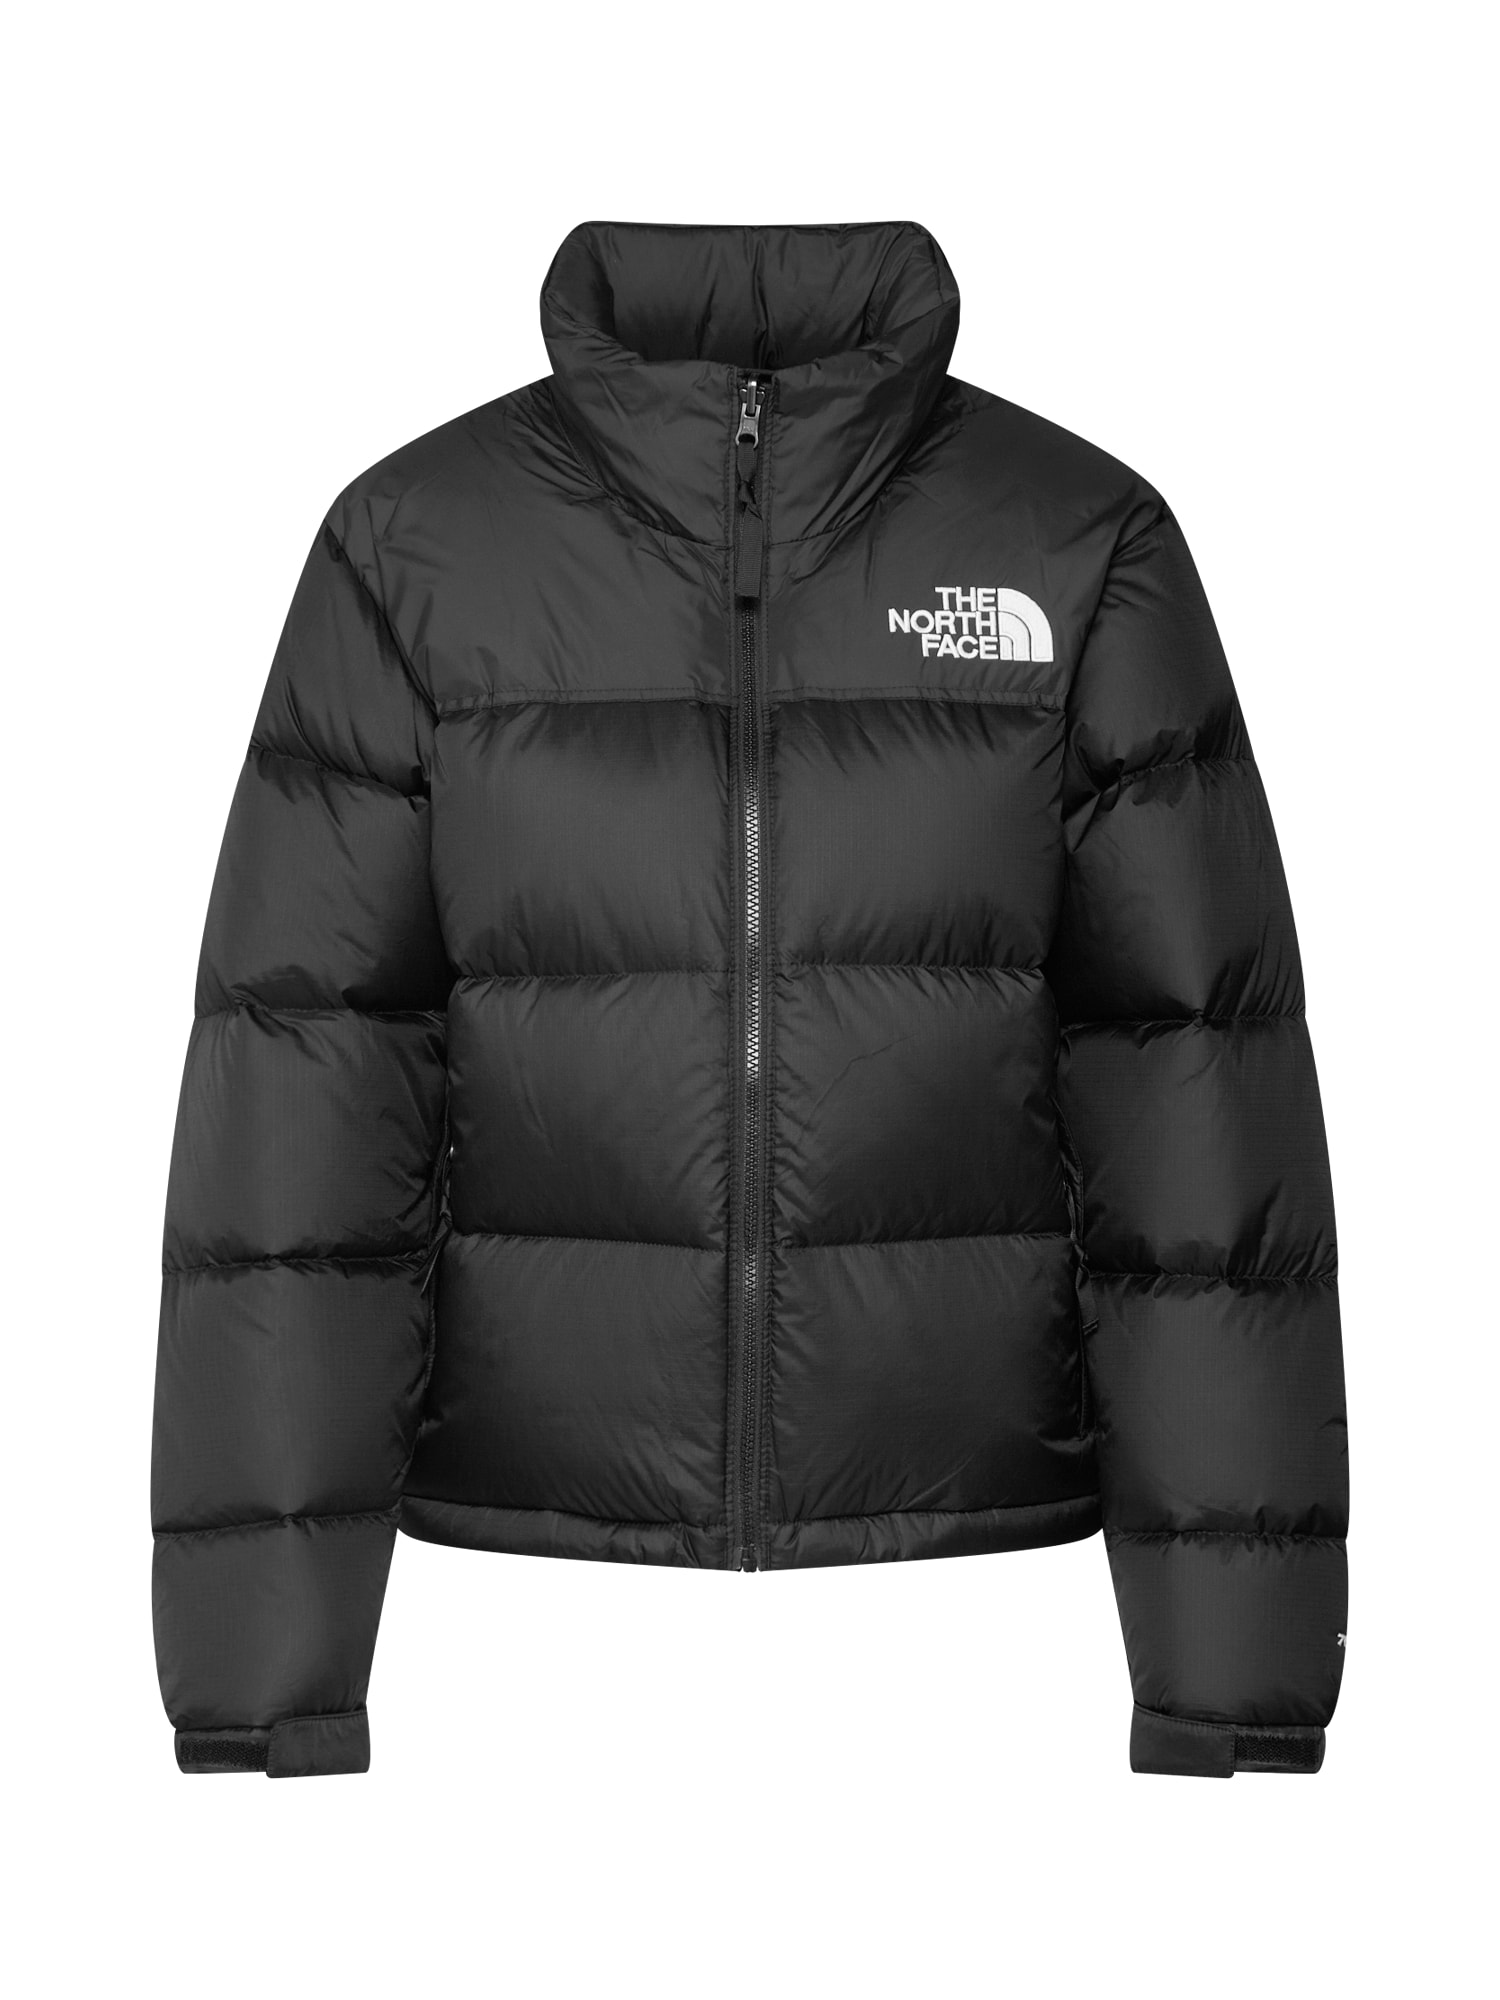 THE NORTH FACE Zimní bunda 1996 Retro Nuptse černá The North Face